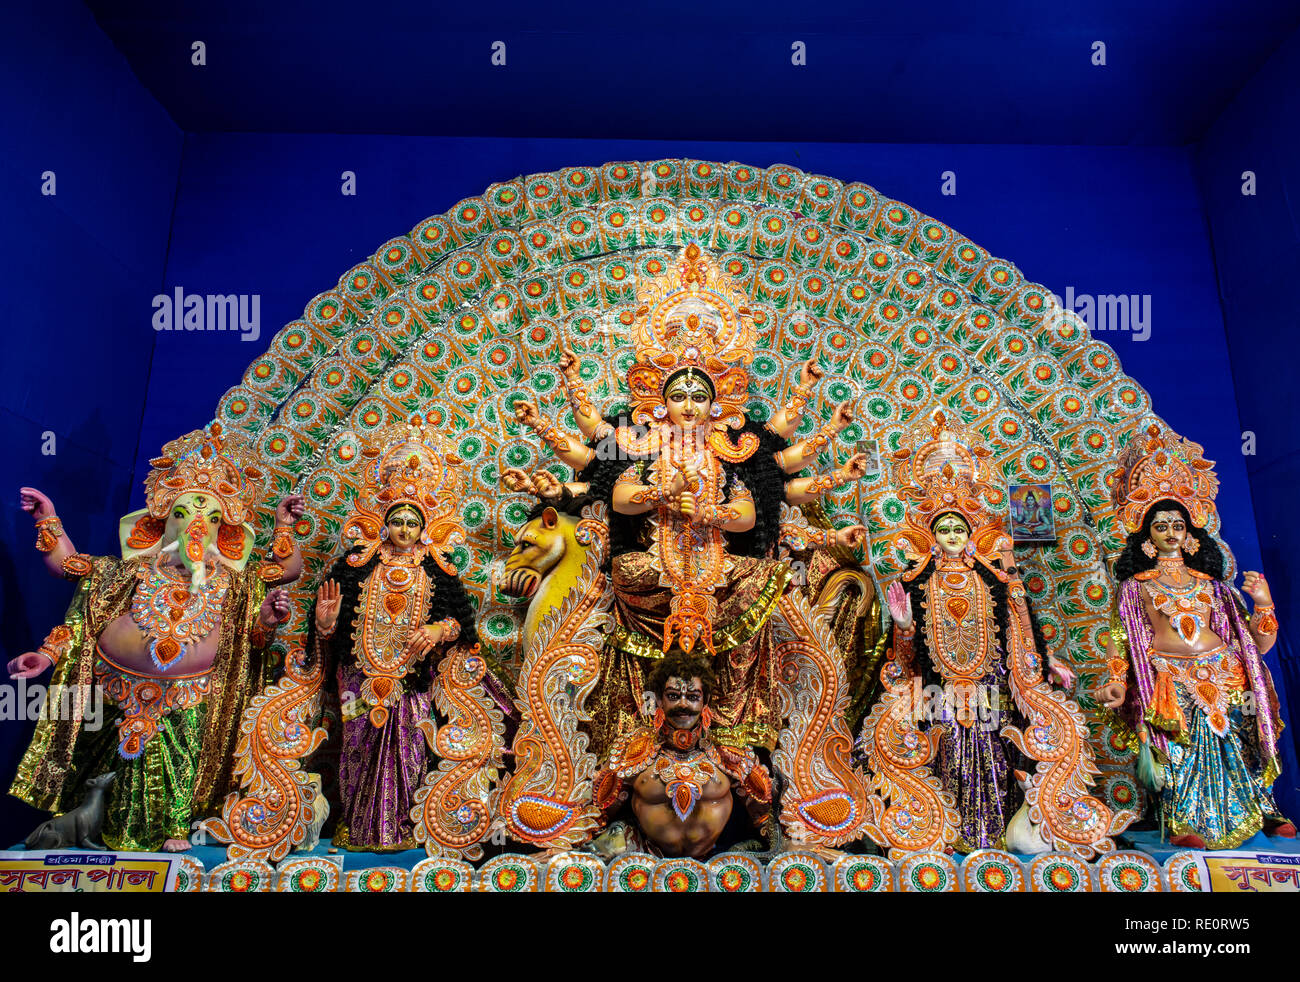 Goddess Durga: Durga Puja is the one of the most famous festival celebrated in West Bengal, Assam, Tripura and is now celebrated worldwide.. - Stock Image